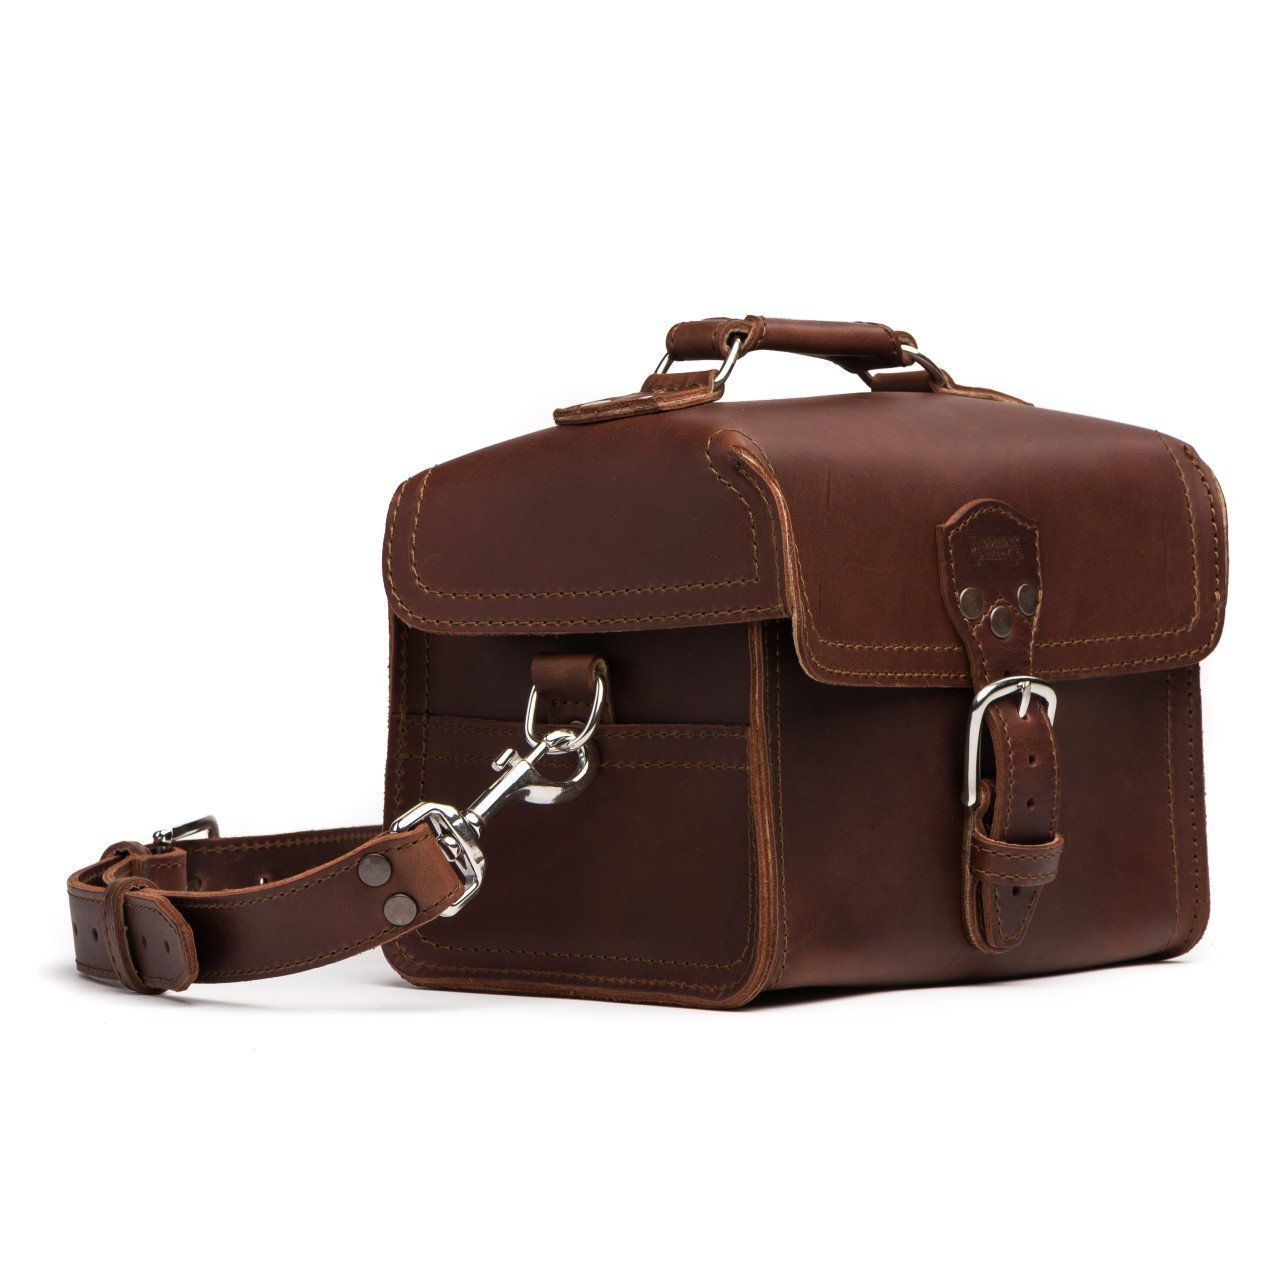 Saddleback Leather Camera Bag - 100% Full Grain Leather with 100 Year Warranty